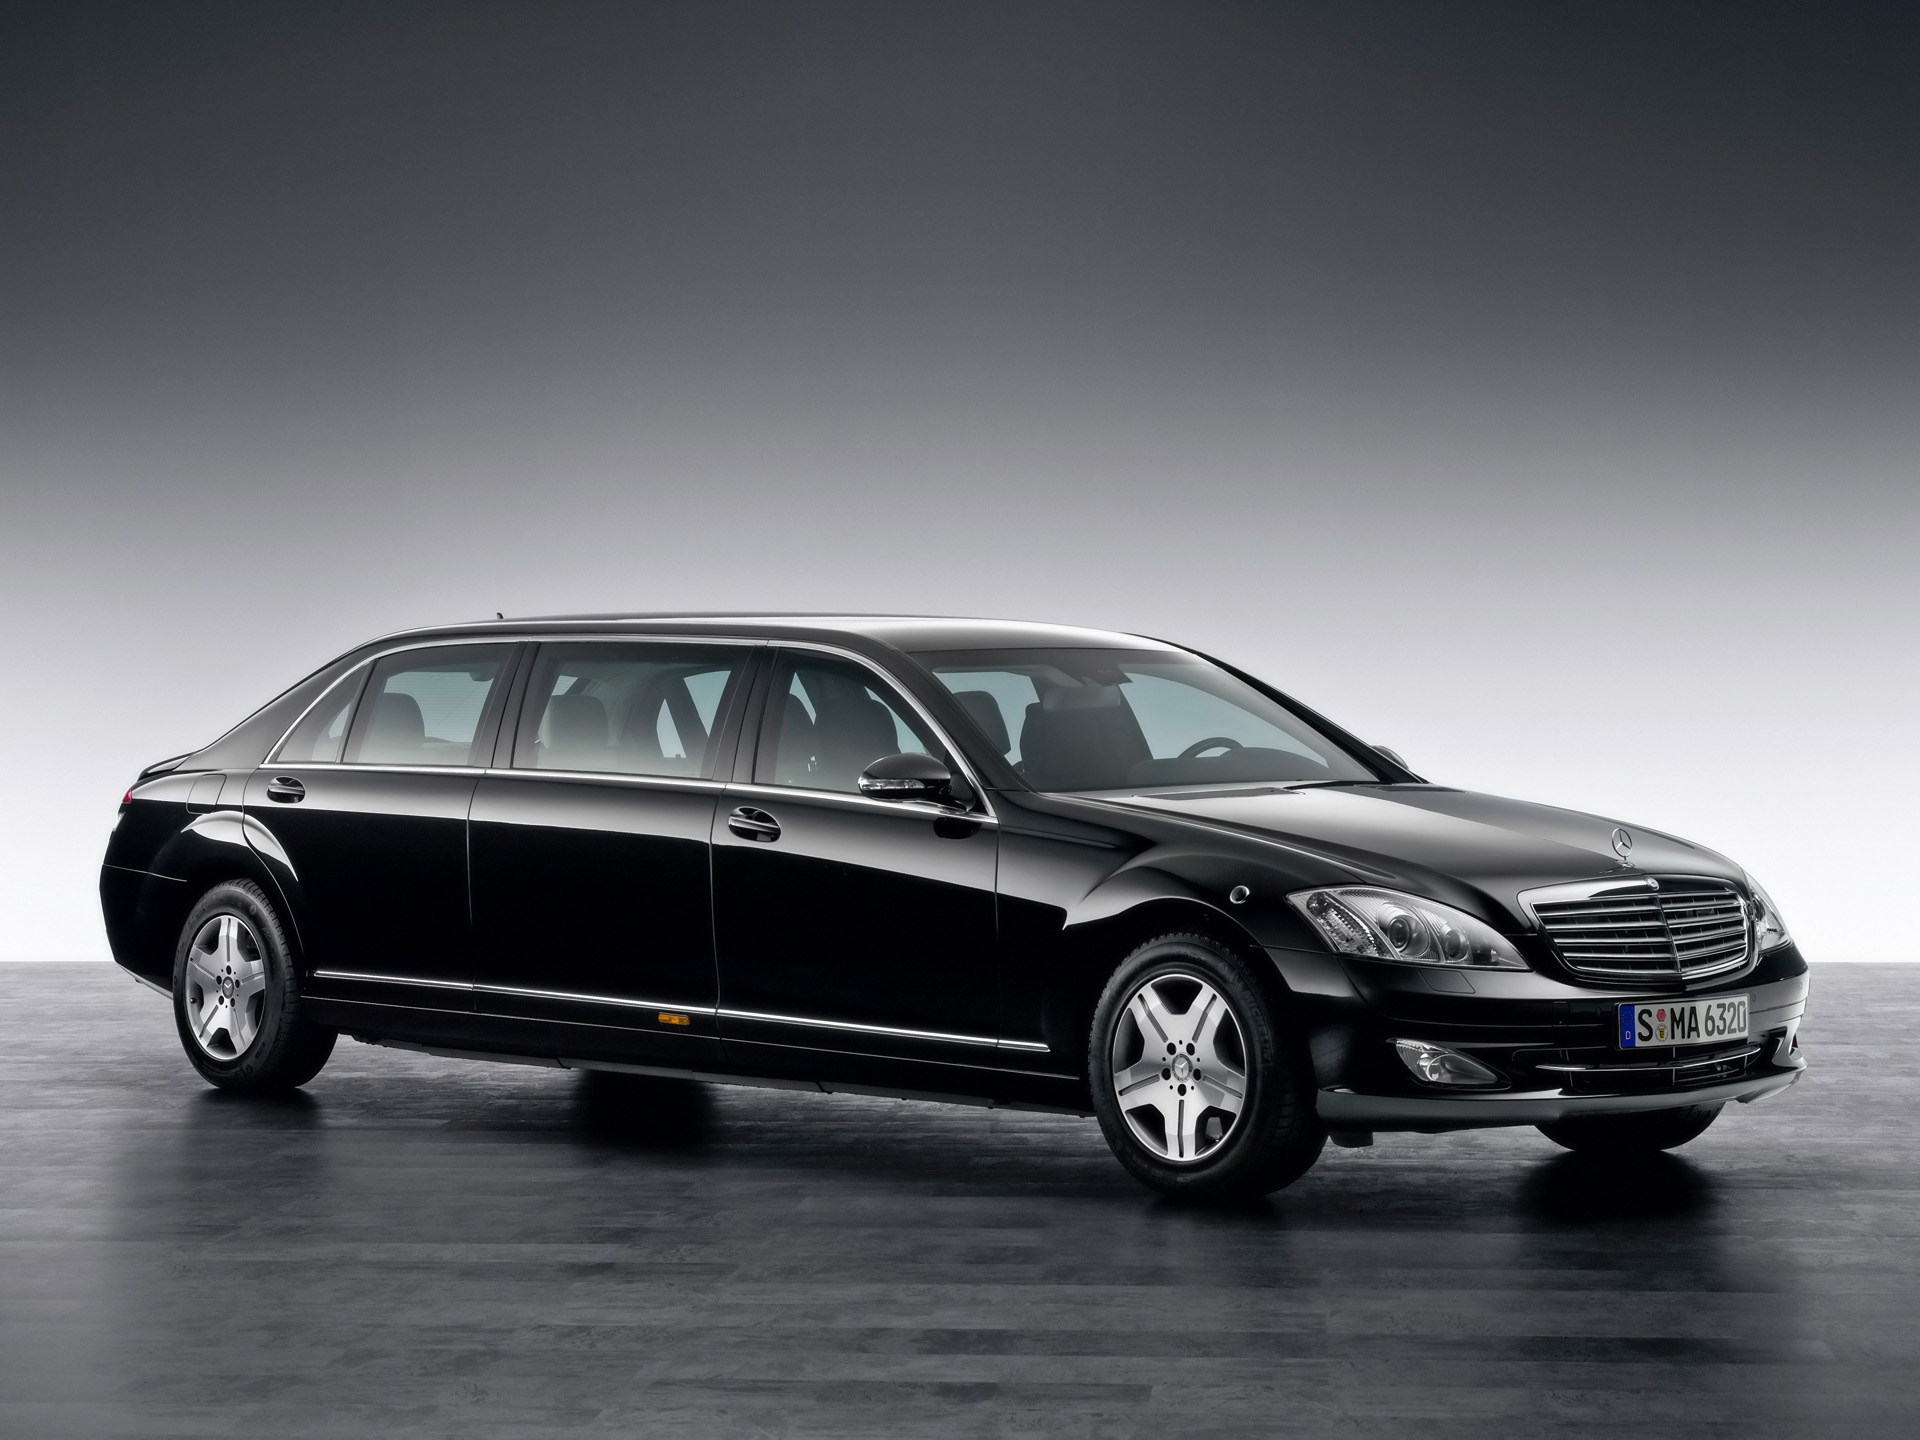 Mercedes-Benz S 600 Pullman Guard Limousine photo 58441